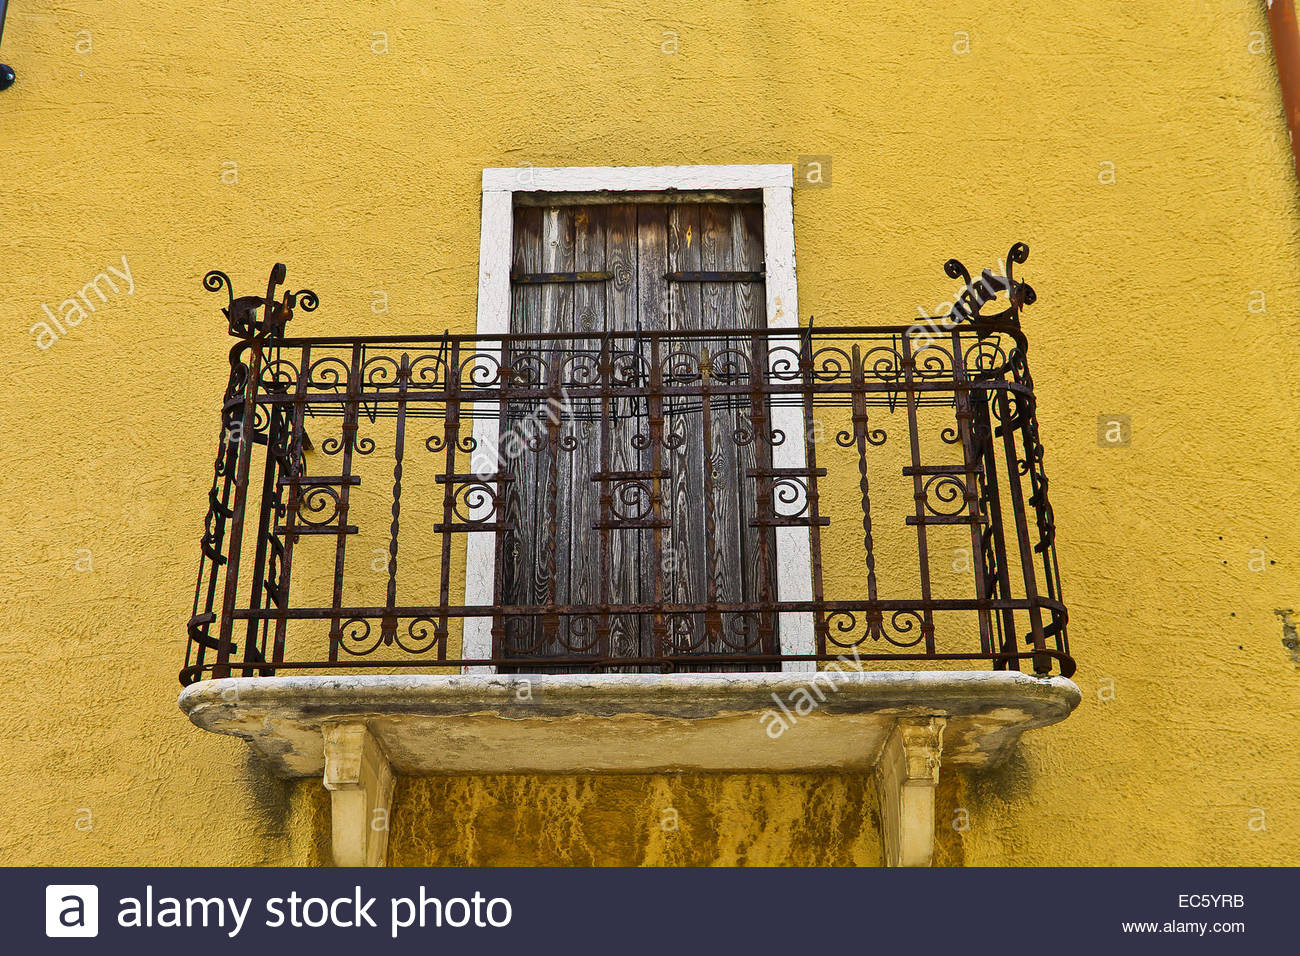 Wrought iron rails, old balcony, yellow walls San Georgio Stock ...